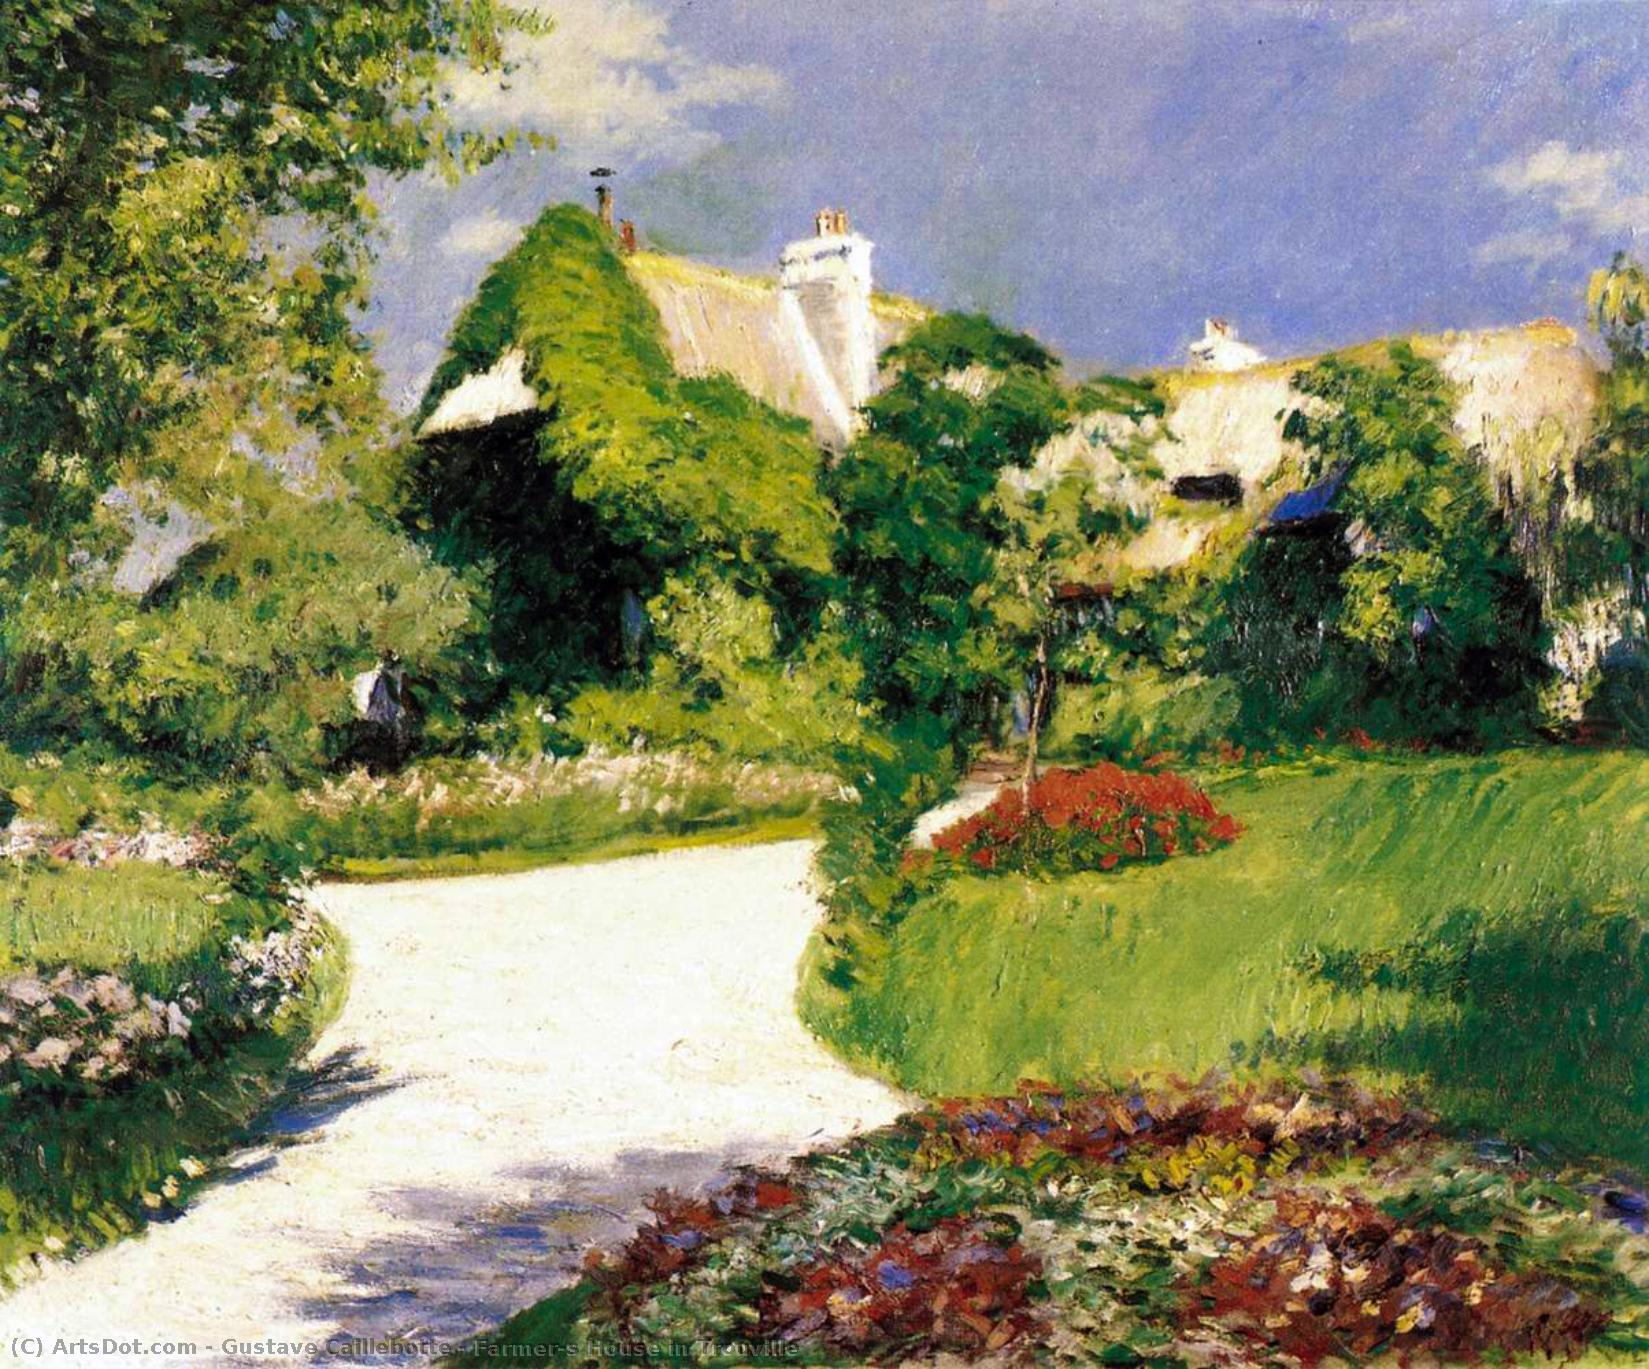 Wikioo.org - สารานุกรมวิจิตรศิลป์ - จิตรกรรม Gustave Caillebotte - Farmer's House in Trouville